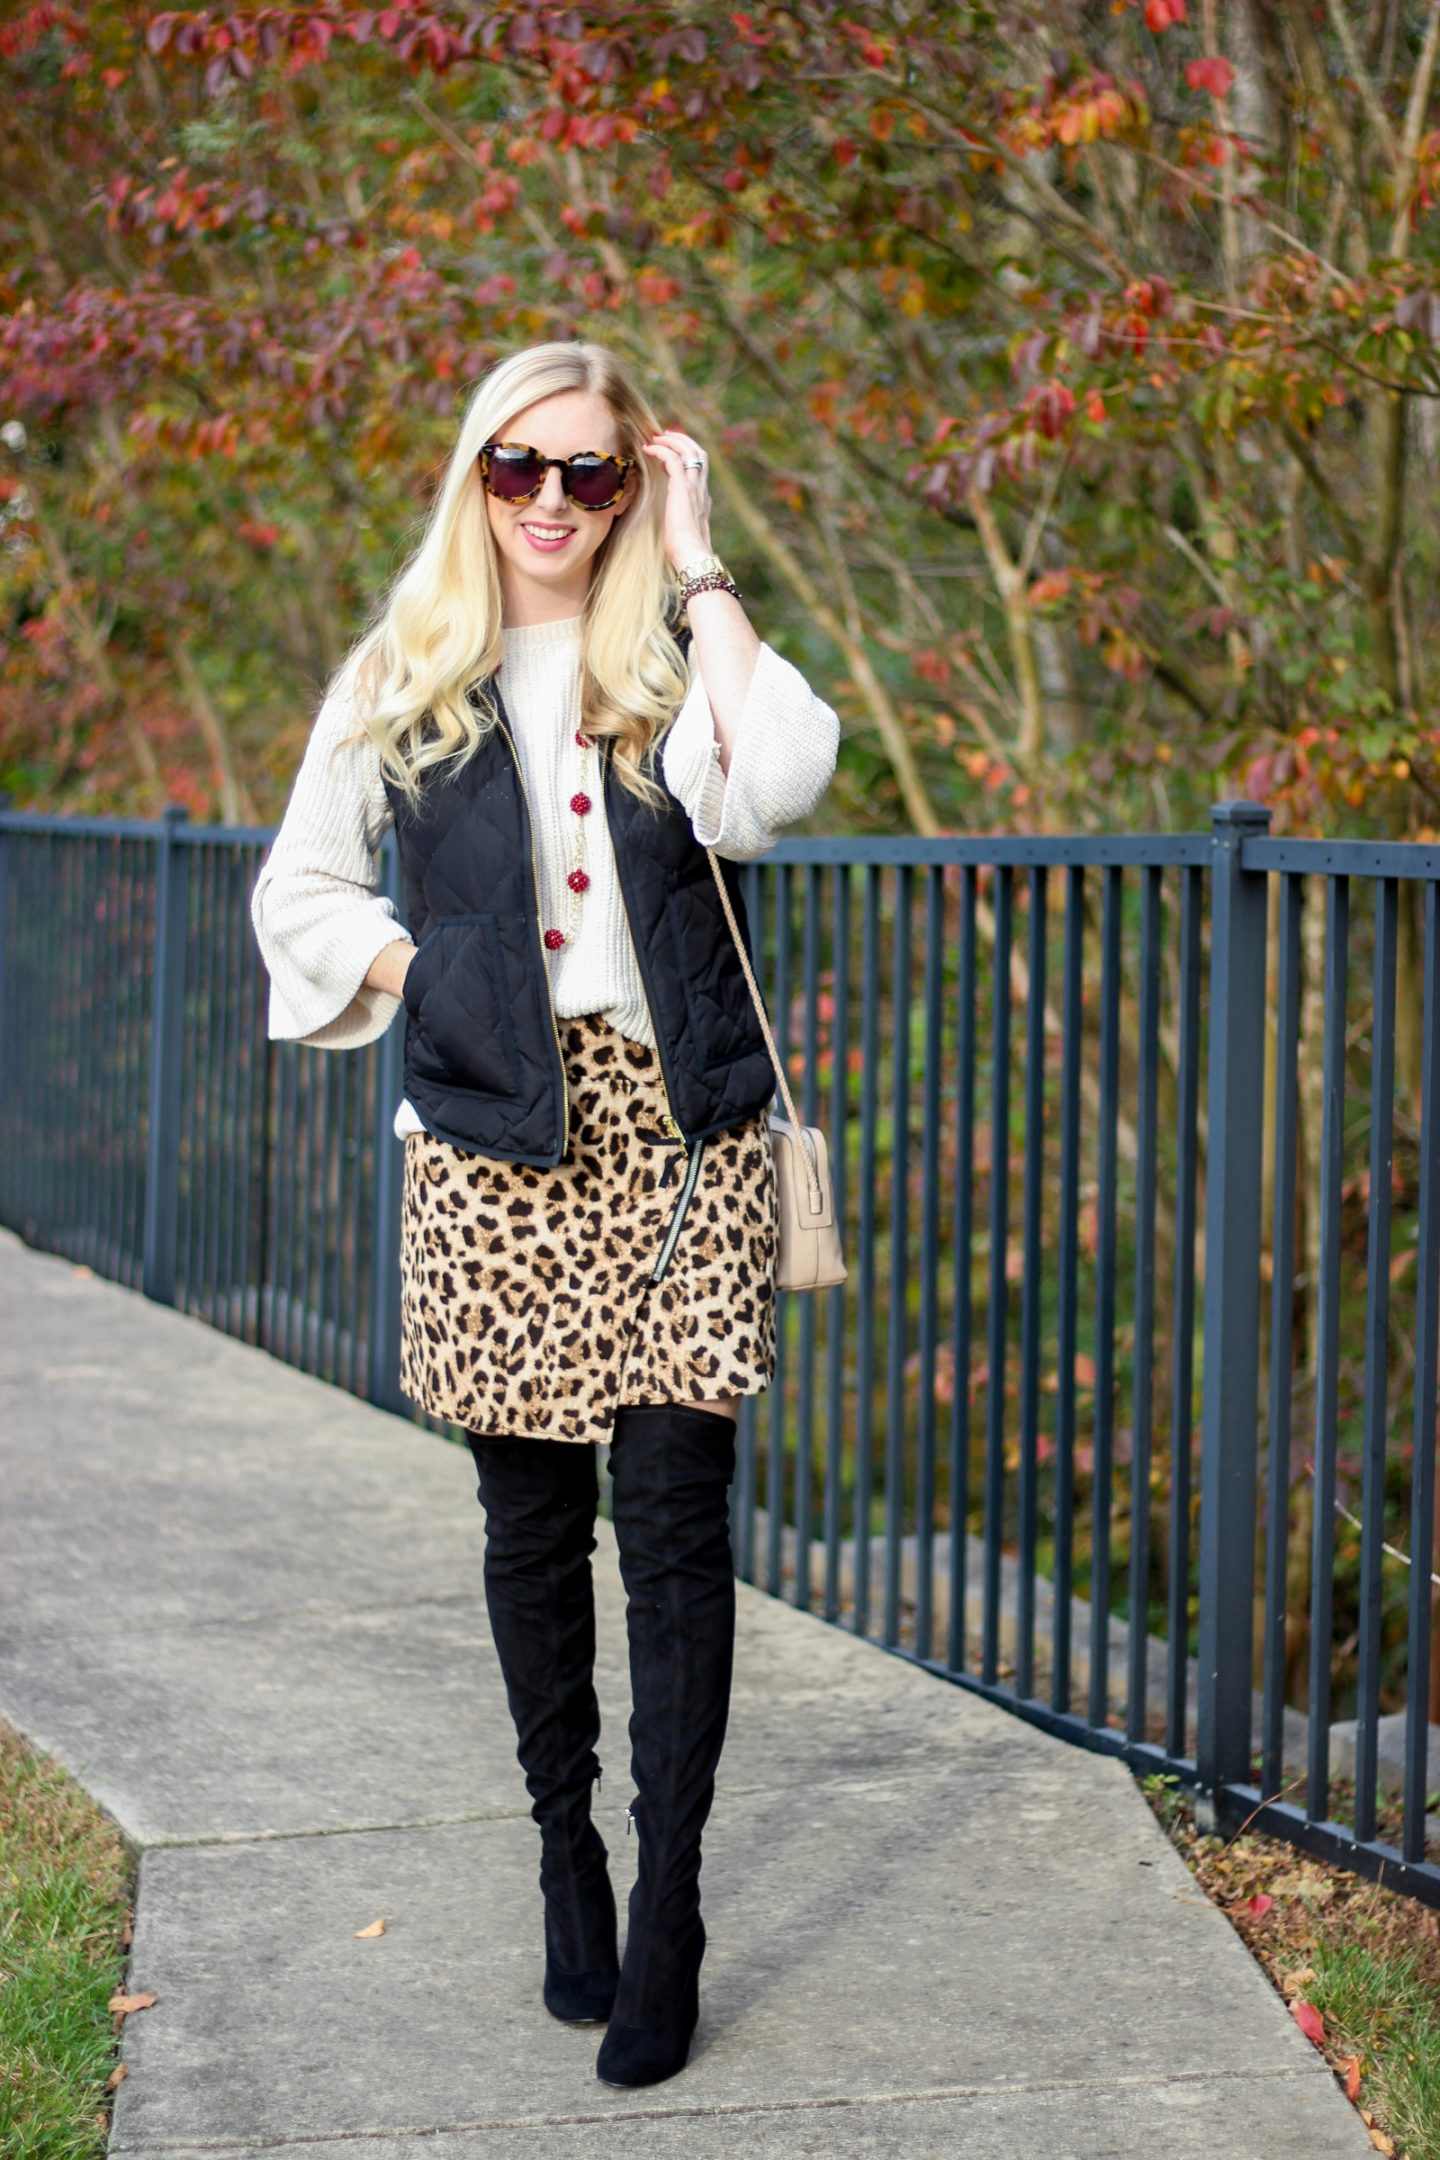 SALE Outfit with A Leopard Skirt & Over The Knee Boots by Washington DC fashion blogger The Styled Blonde